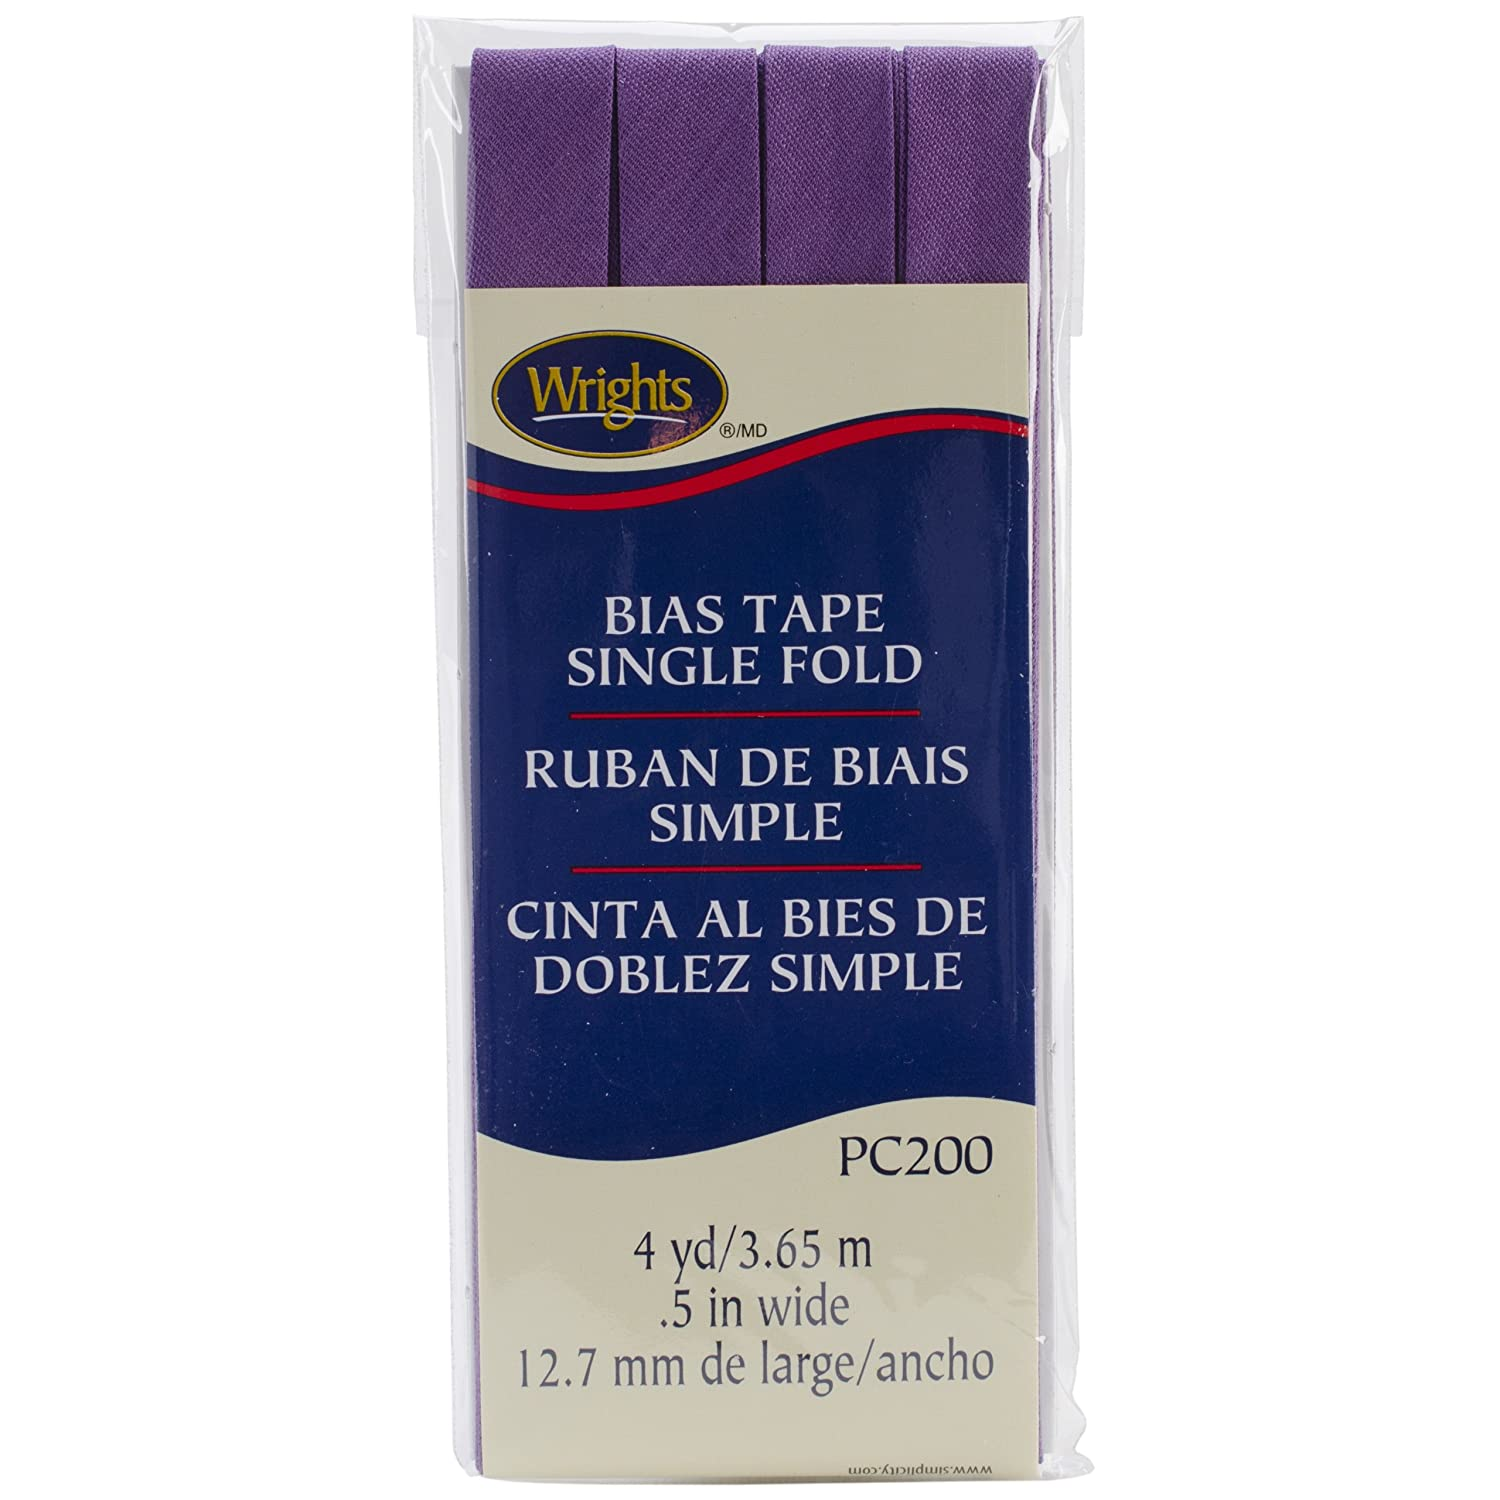 4 yd Wright Products 117-200-051 Wrights Single Fold Bias Tape Lavender